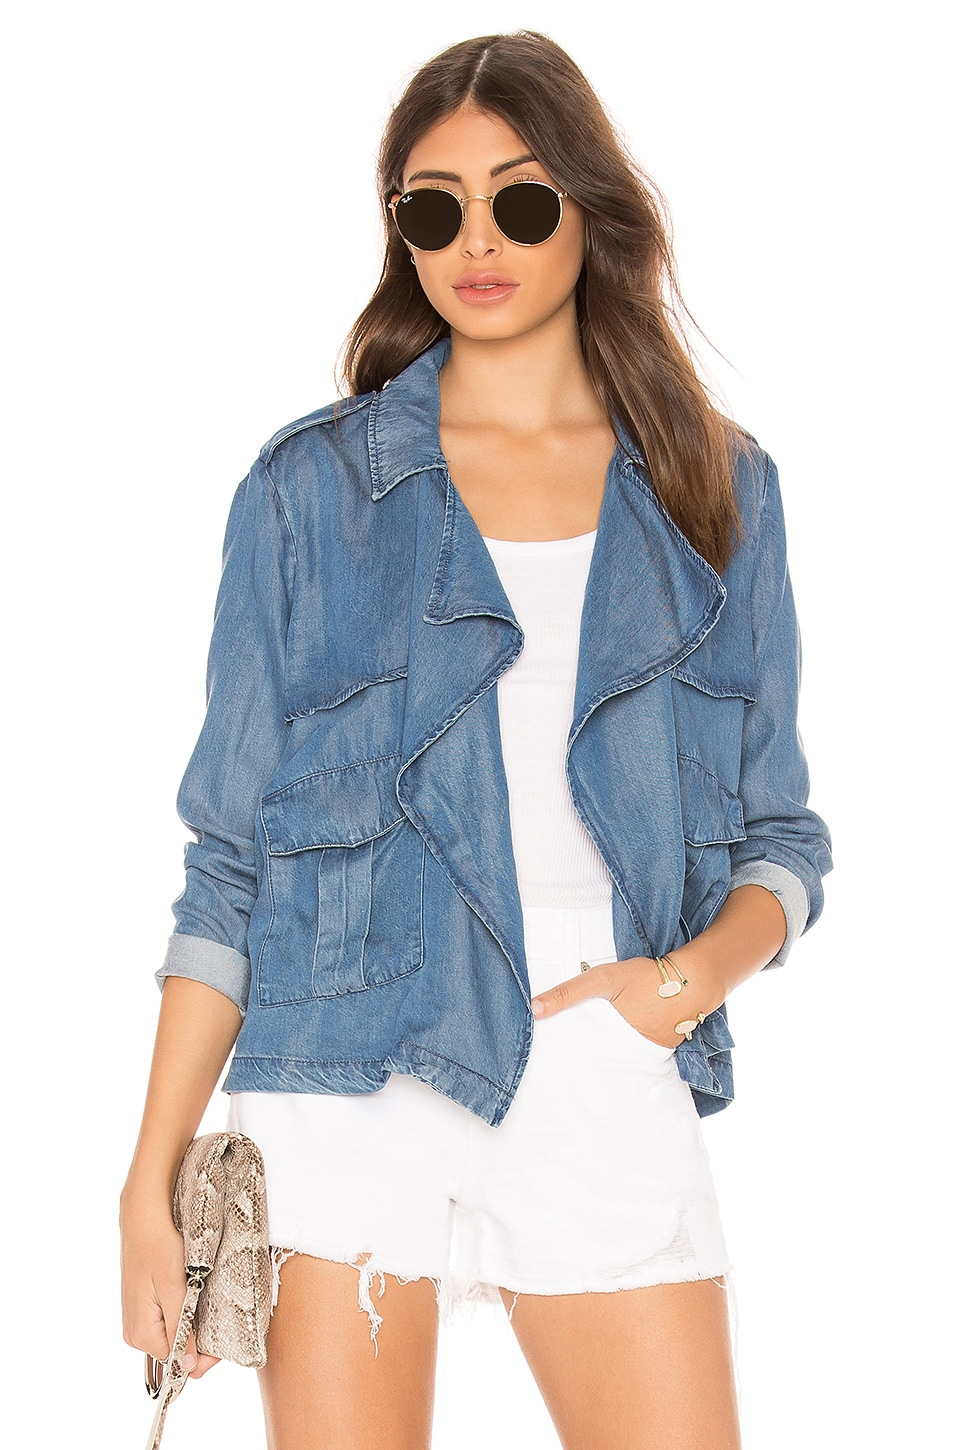 Splendid Soft Denim Jacket in Medium Wash